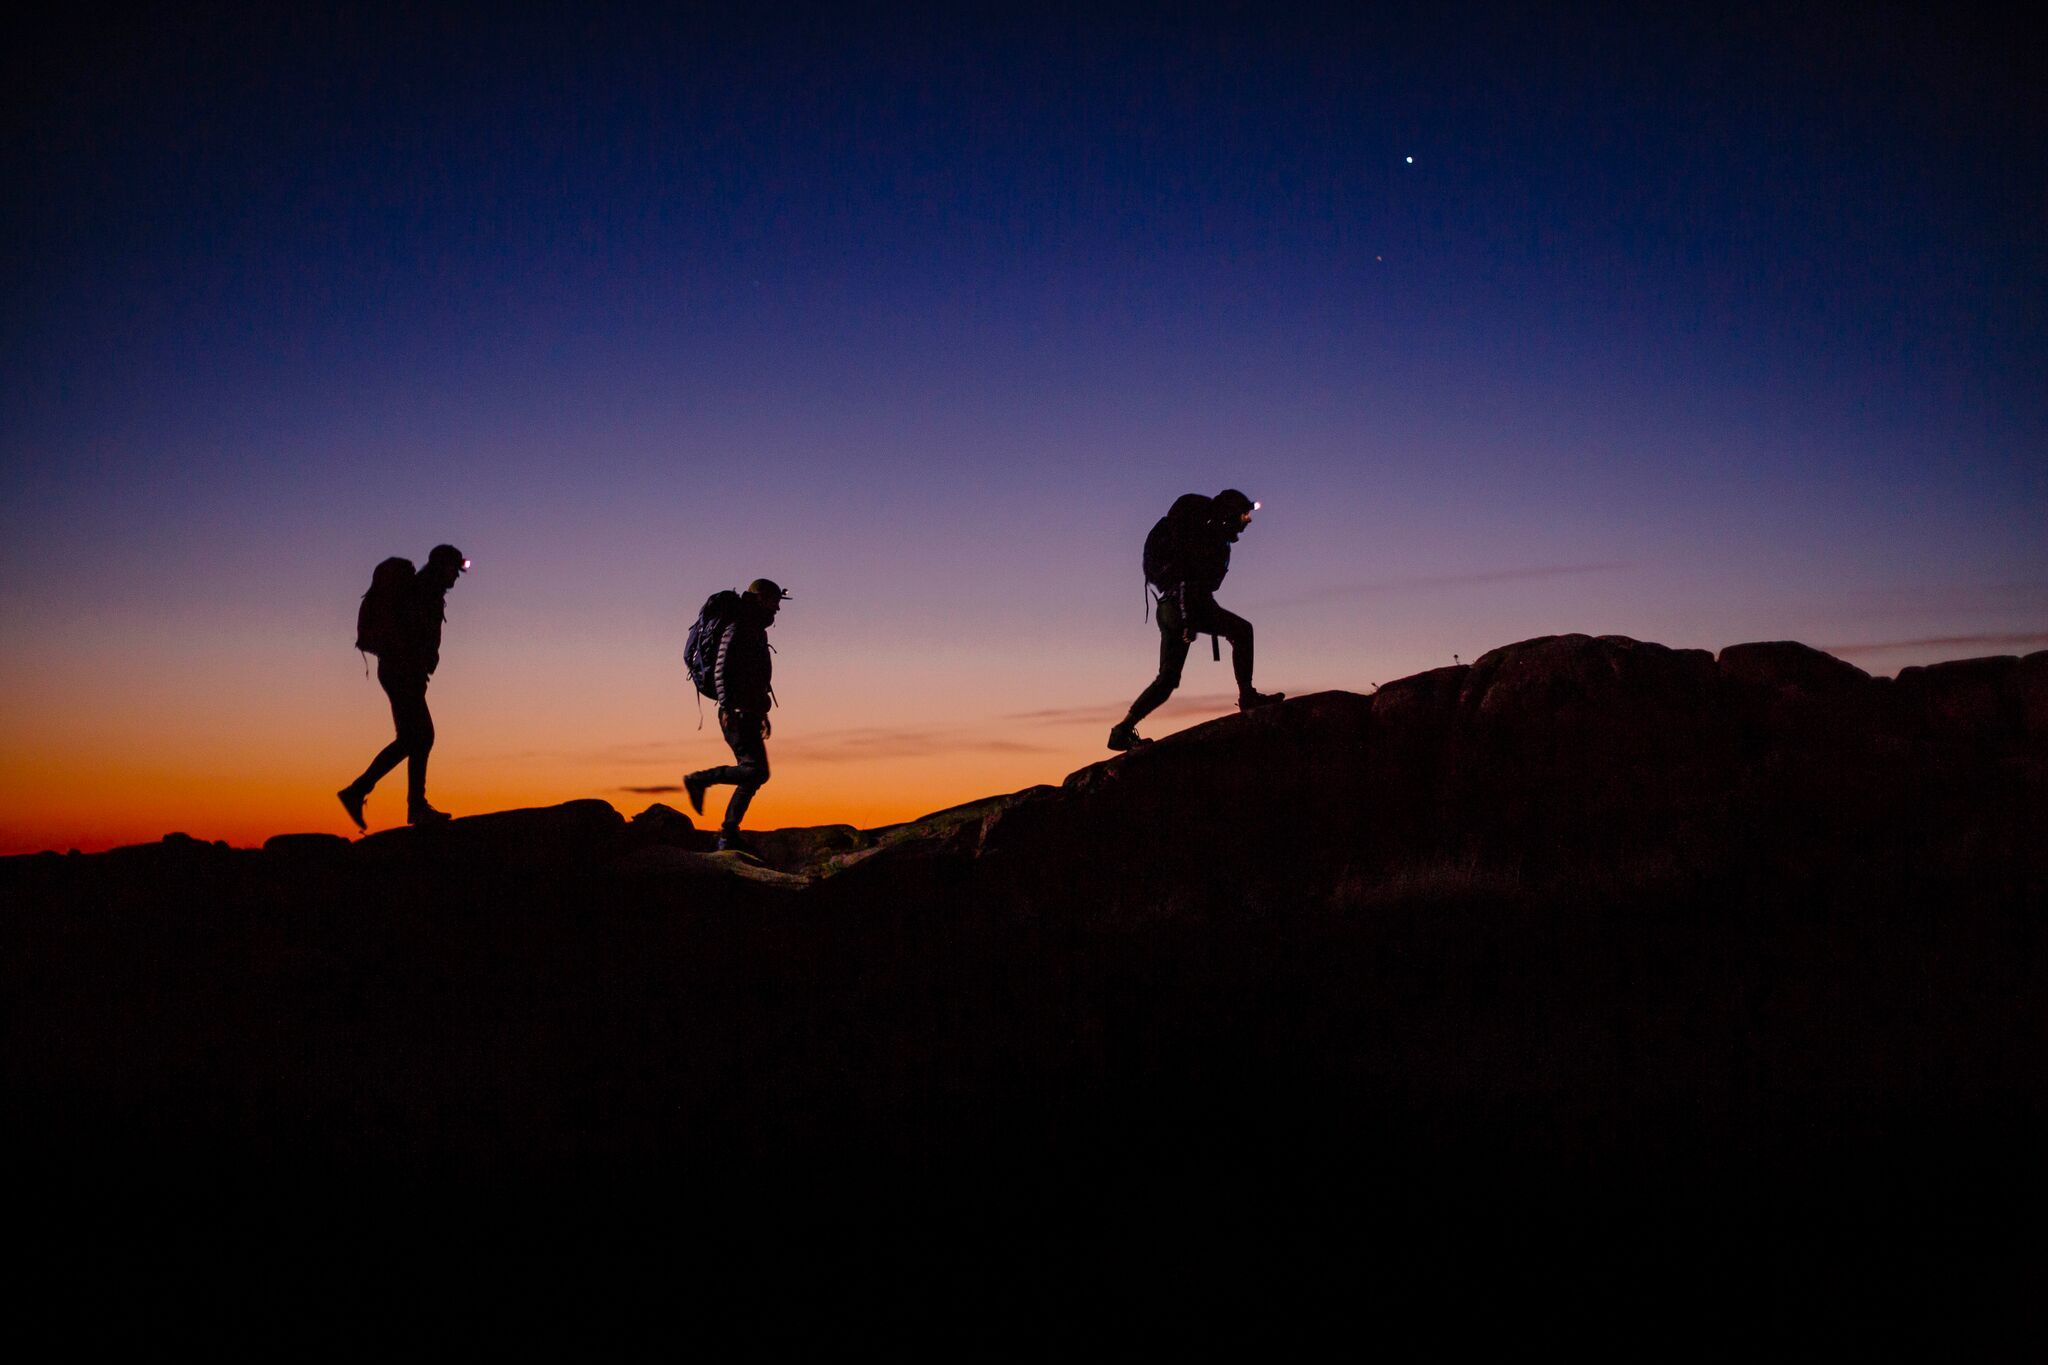 Night Hiking Tips For Squeezing In Extra Time On The Trail